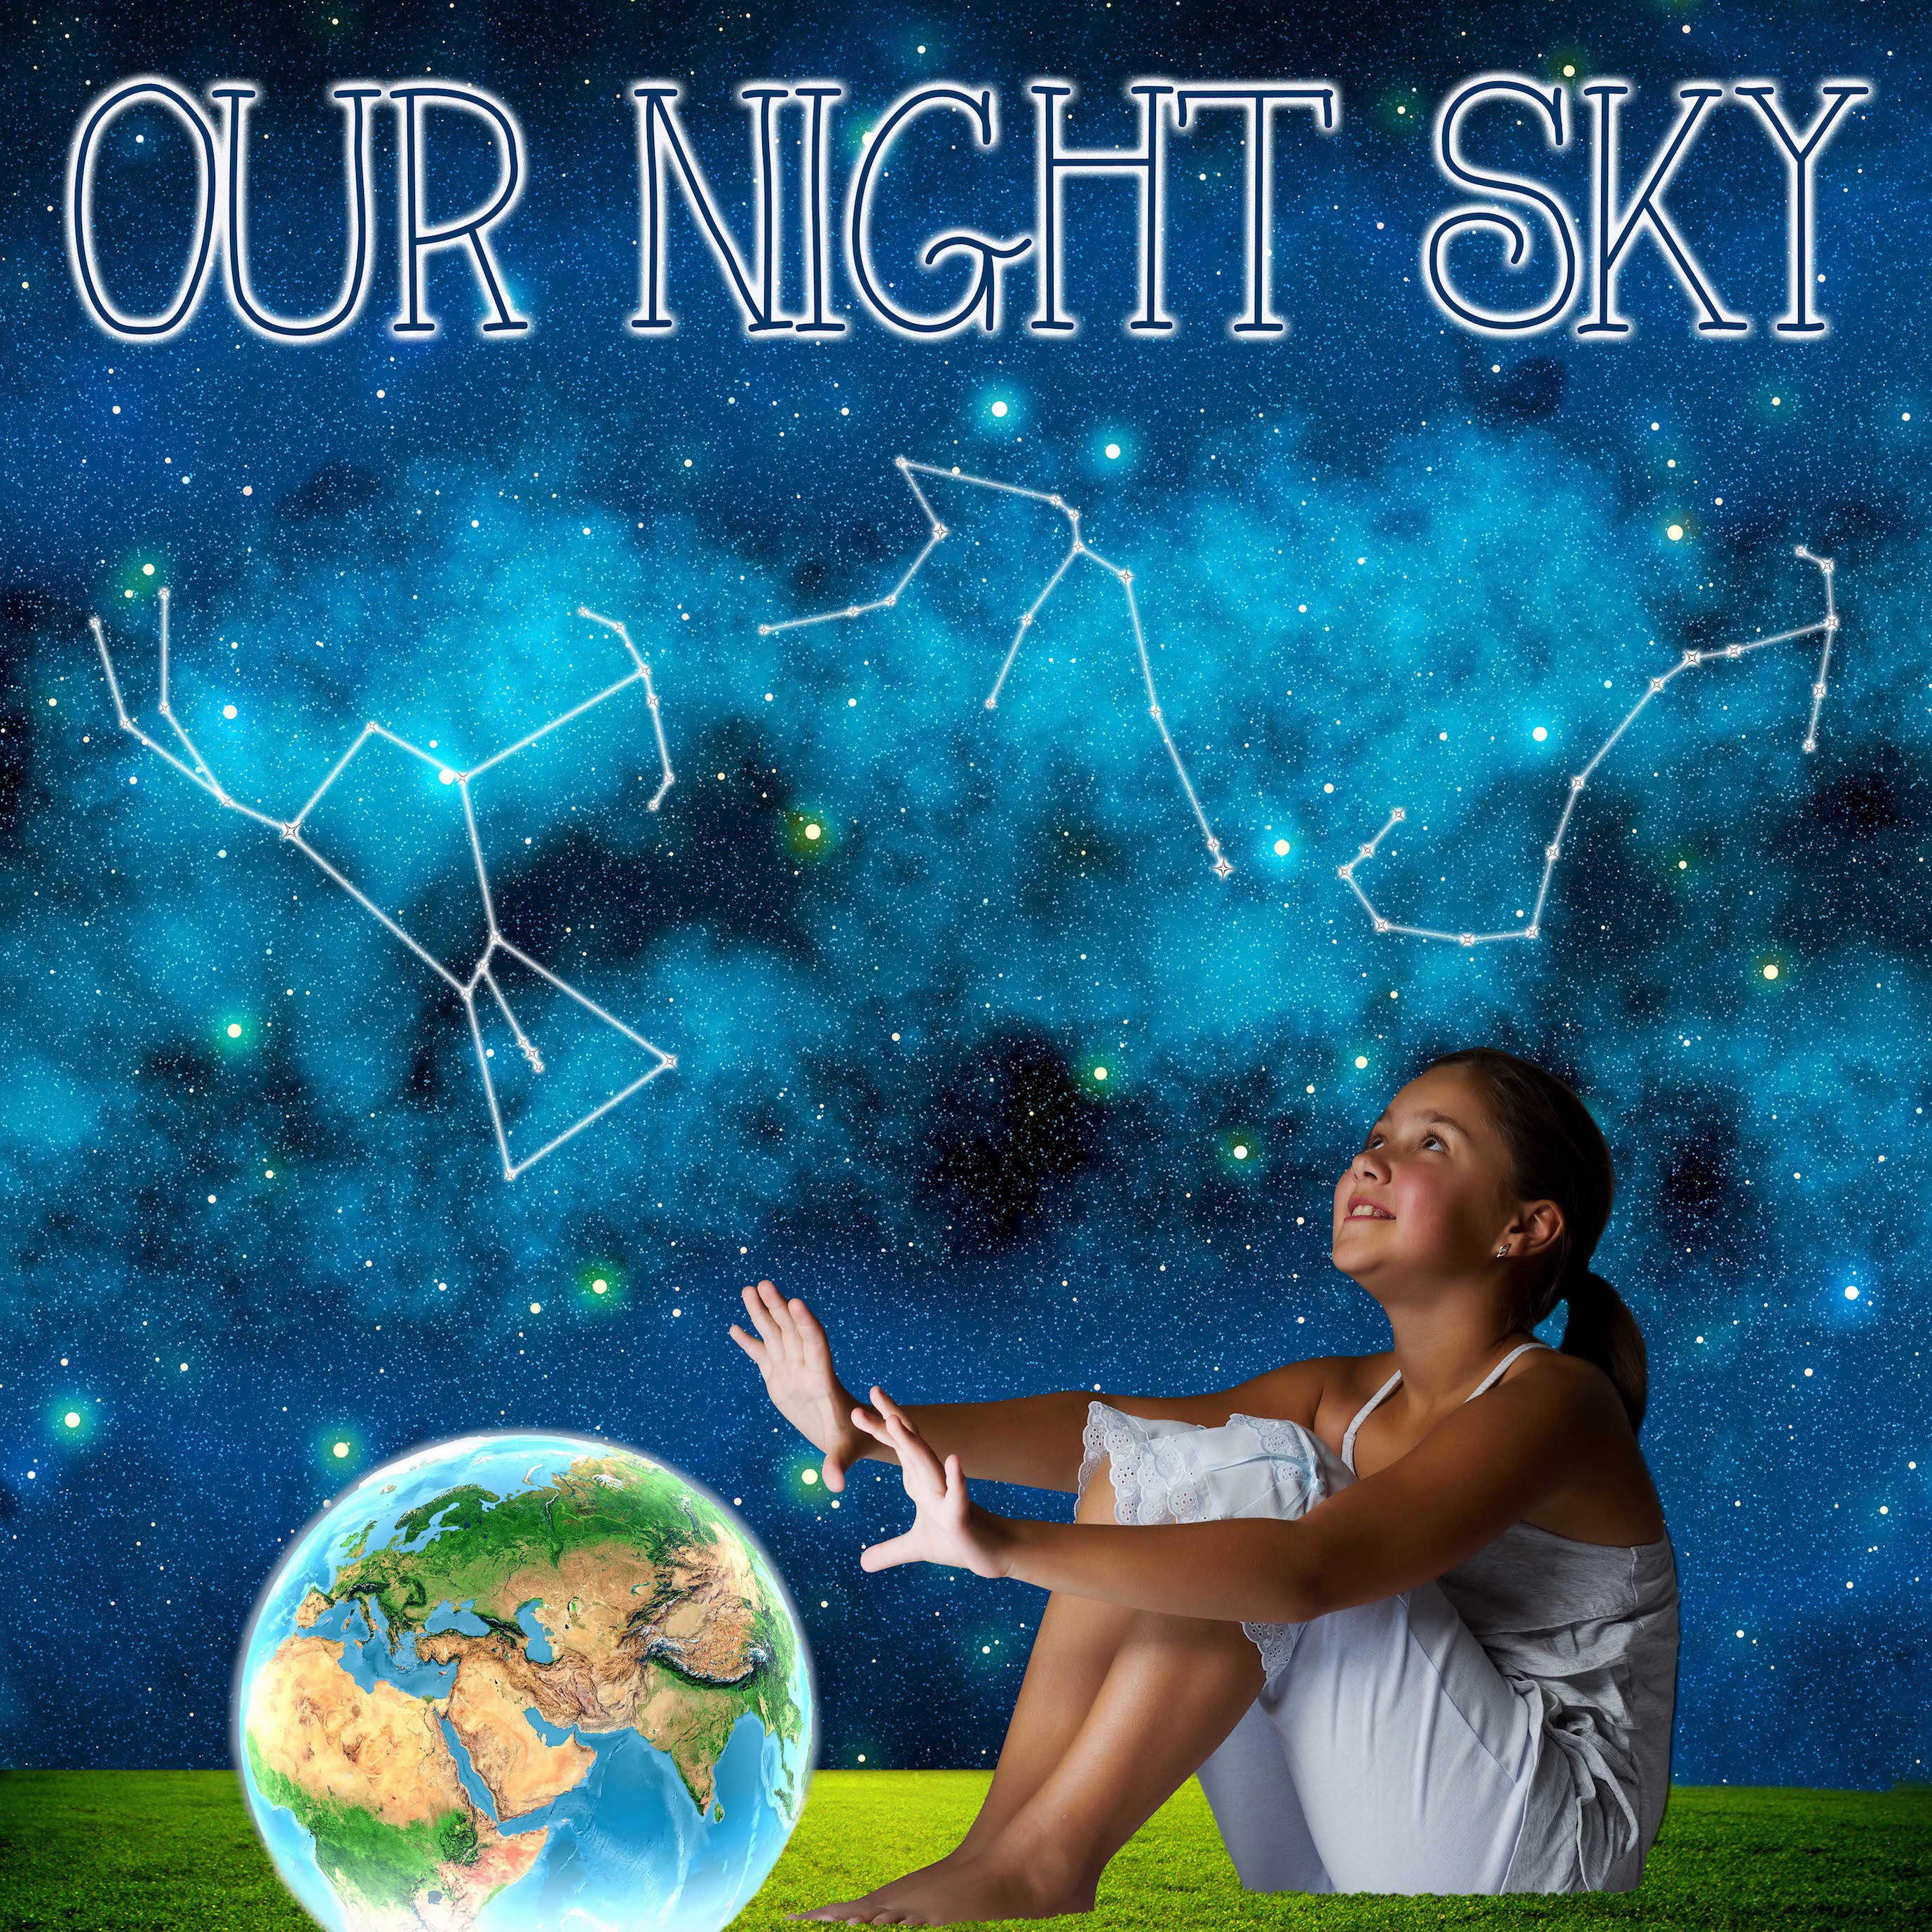 Our Night Sky July 3, 2017 performances at Maja Prentice Theatre, Mississauga Google image from https://www.discovermississauga.ca/component/ohanah/our-night-sky